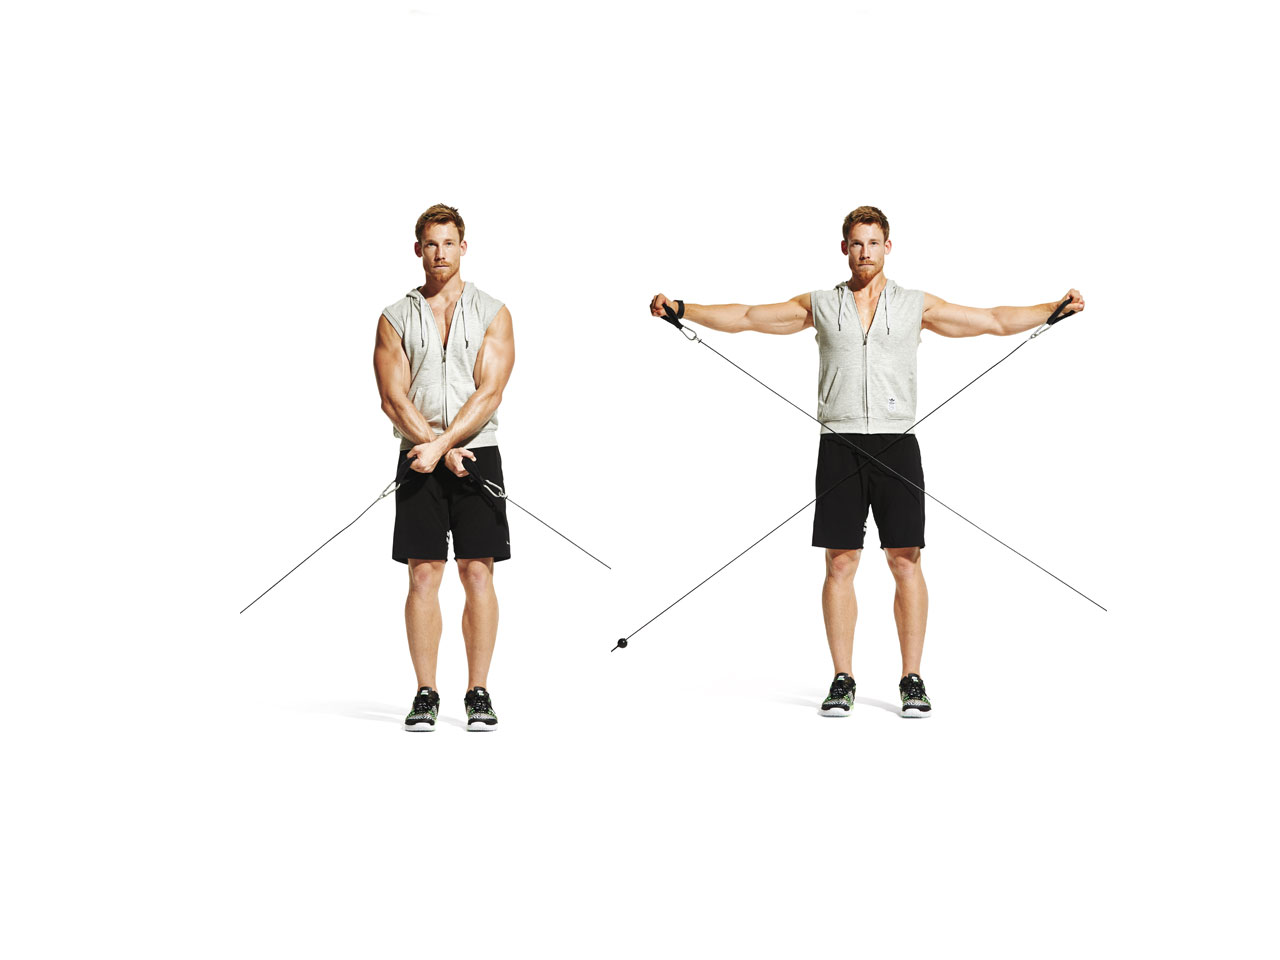 Cross Body Cable Raise Video Watch Proper Form Get Tips Amp More Muscle Amp Fitness